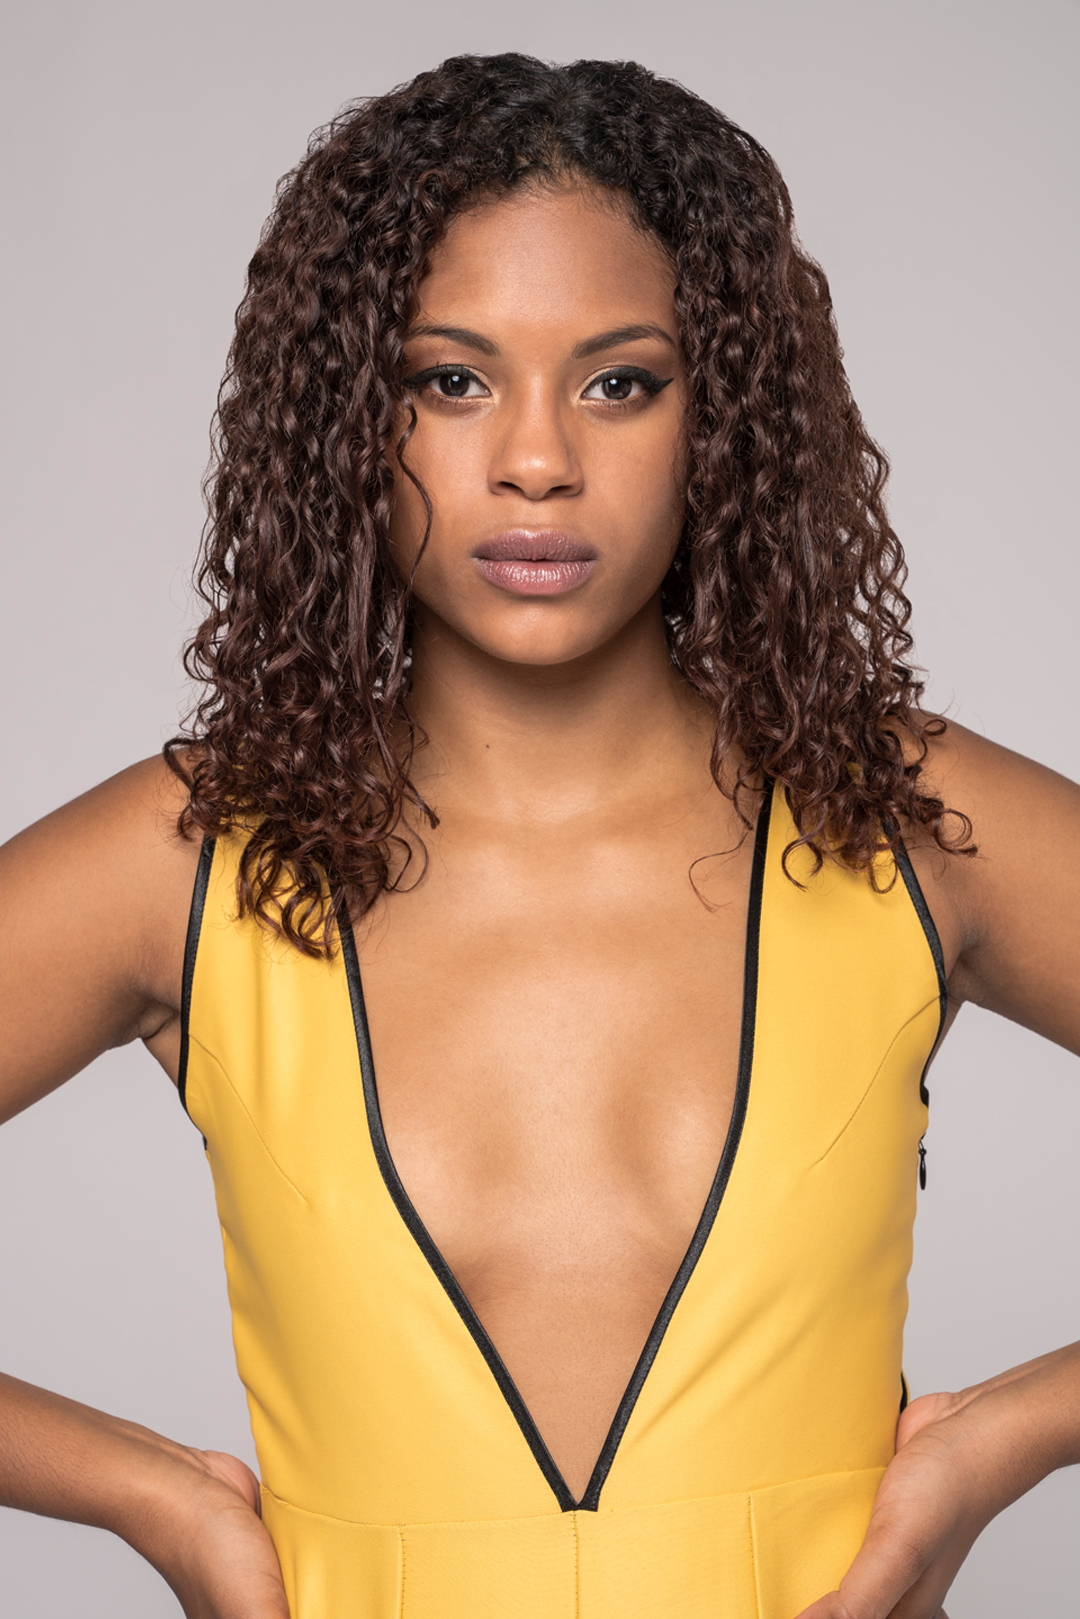 close view of a black model wearing a yellow v-neck jumpsuit